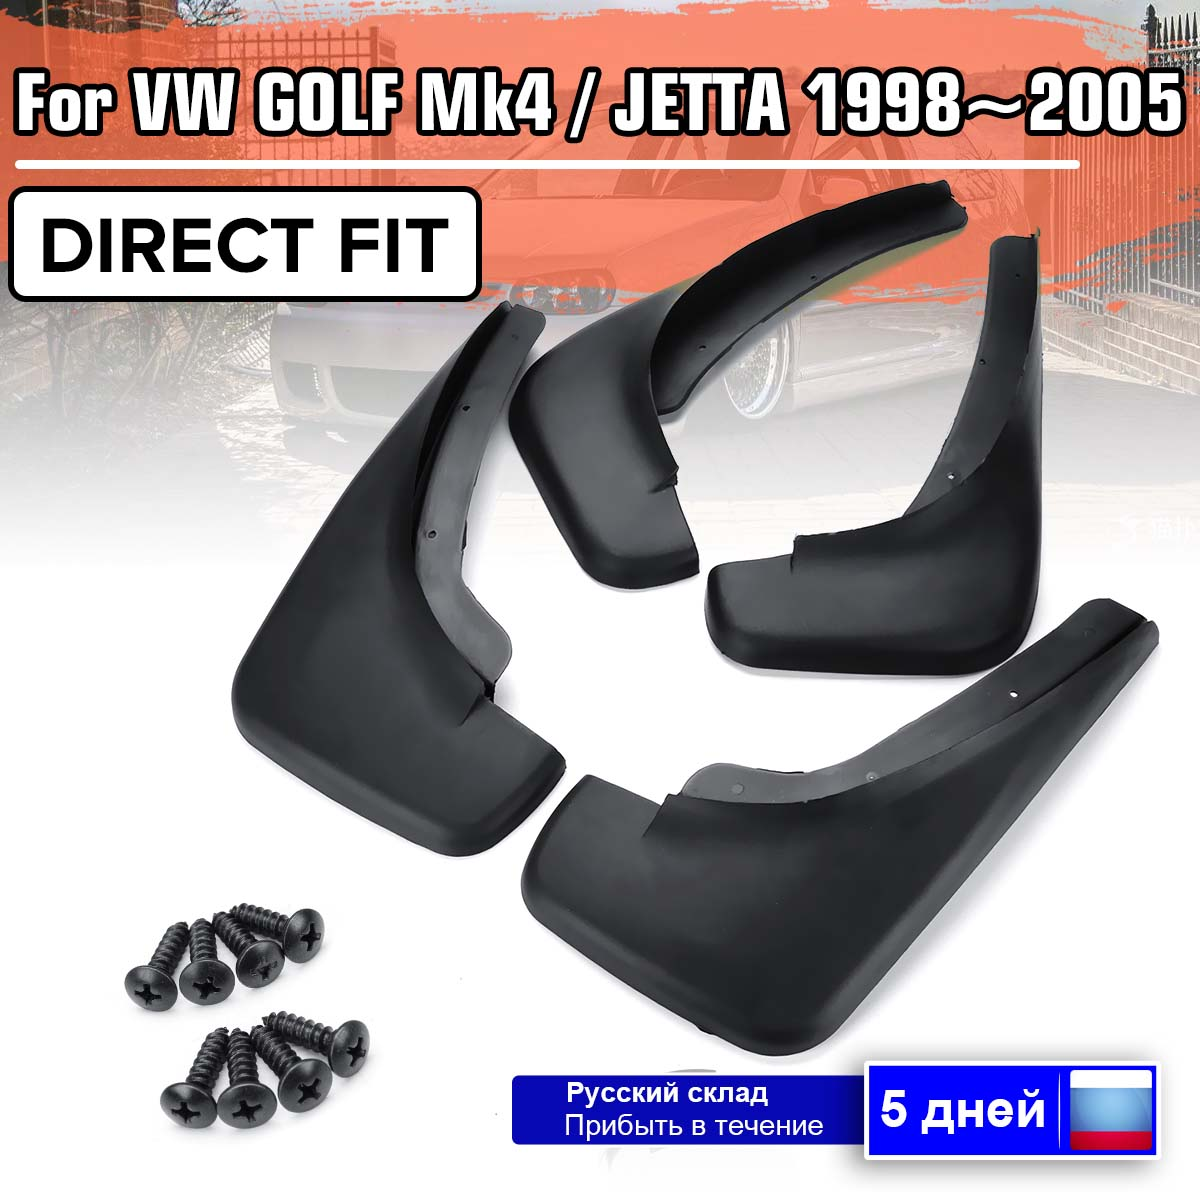 Car Mud Flaps <font><b>Mudflaps</b></font> Splash Guards Front Rear for Fender Mudguards For <font><b>VW</b></font> Golf 4 Mk4 IV Bora Jetta 1998-2005 image